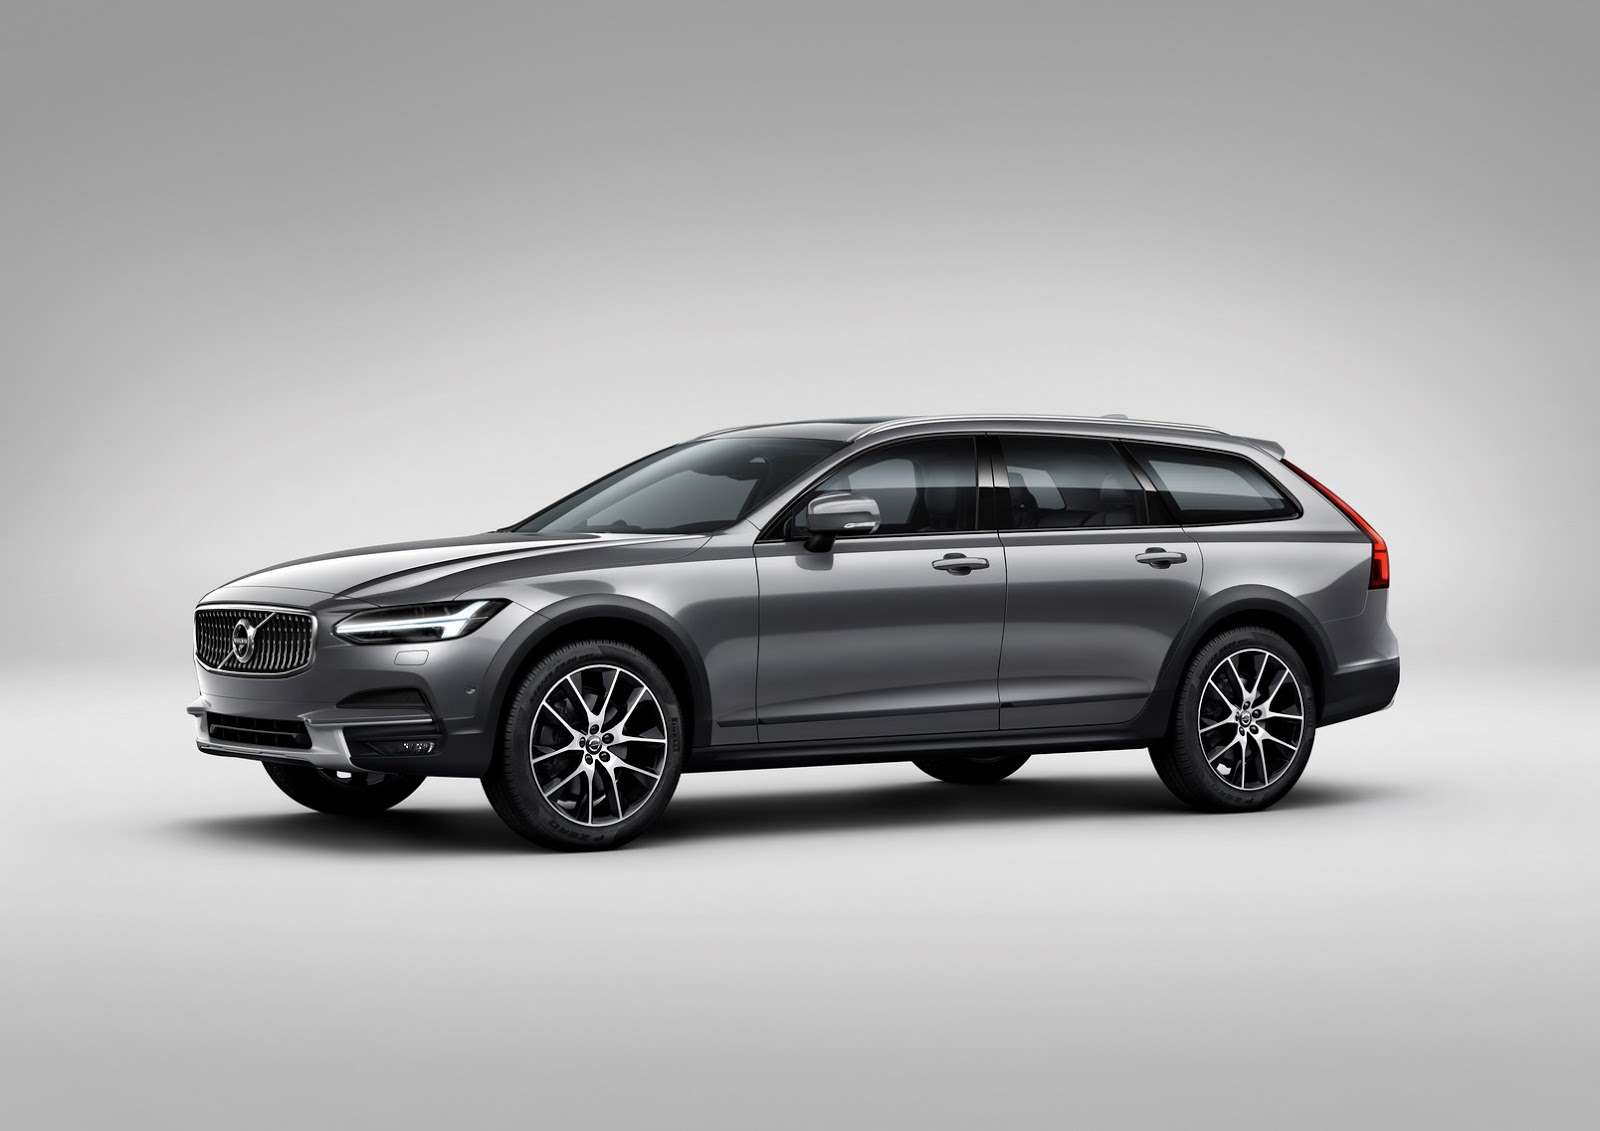 volvo v90 cross country revealed rugged wagon with swedish luxuryVolvo V90 Cross Country Paris #1